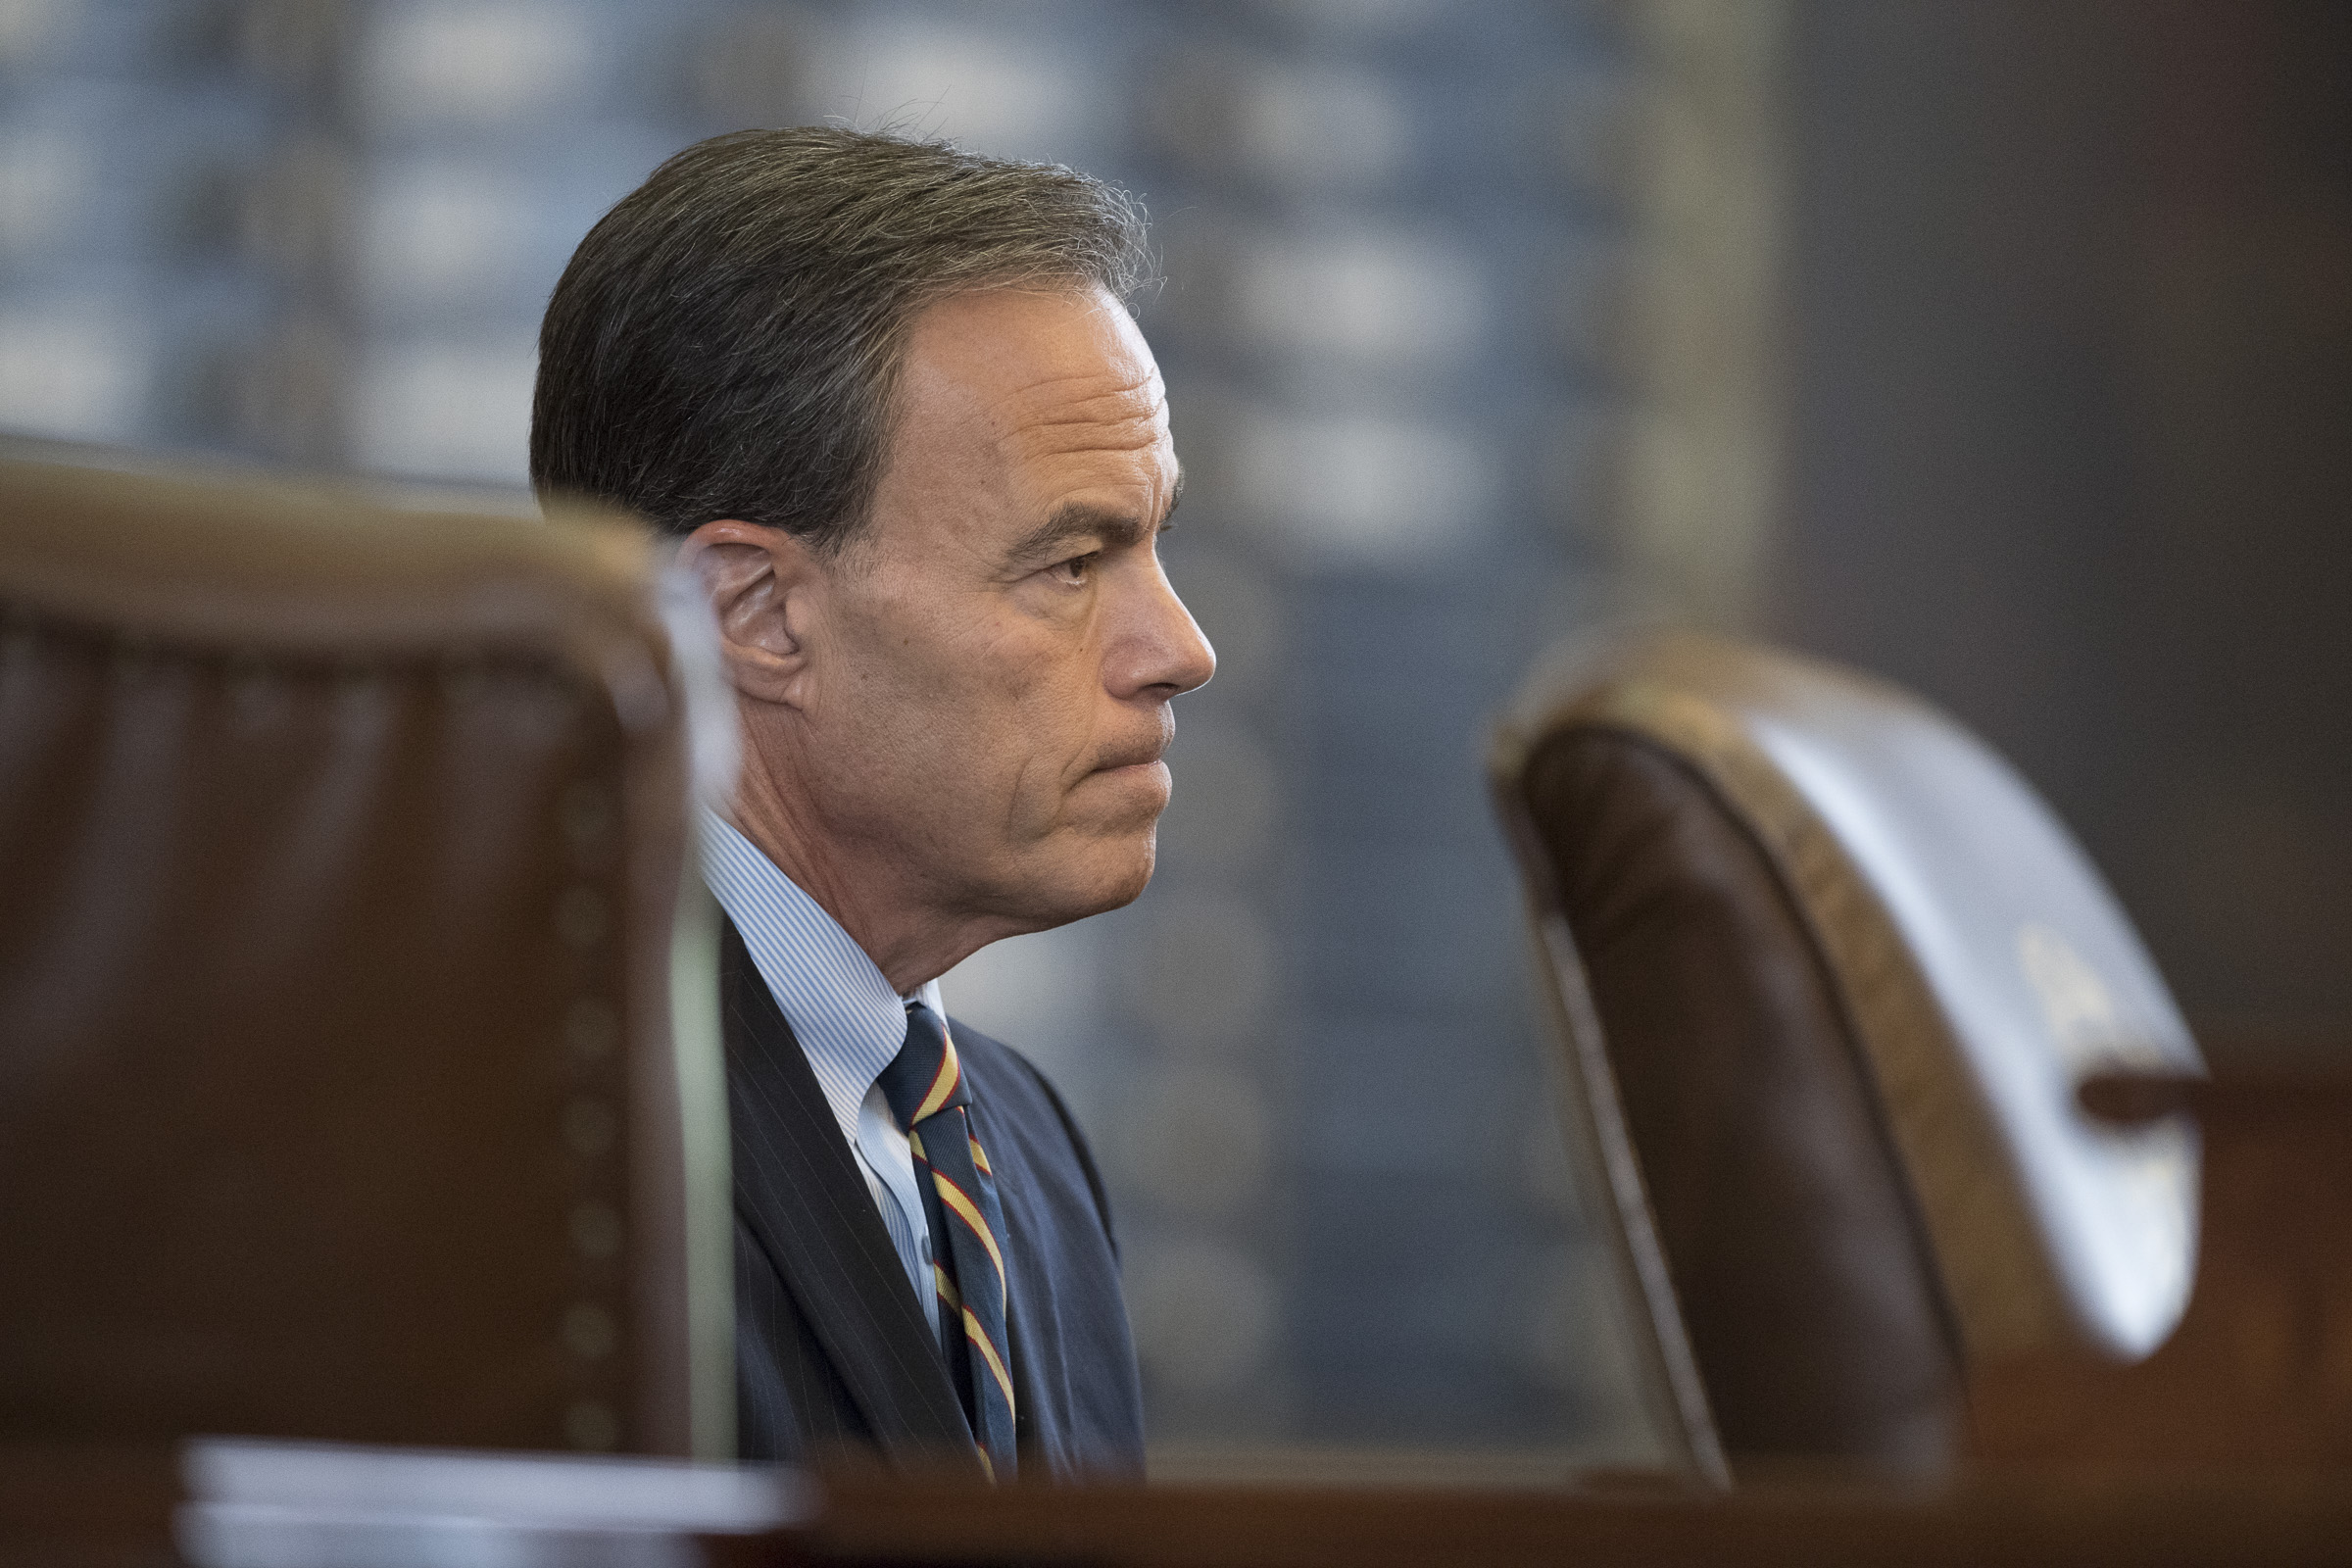 3:42 p.m. House Speaker Joe Straus looks on as lawmakers struggle to get through a mountain of bills.